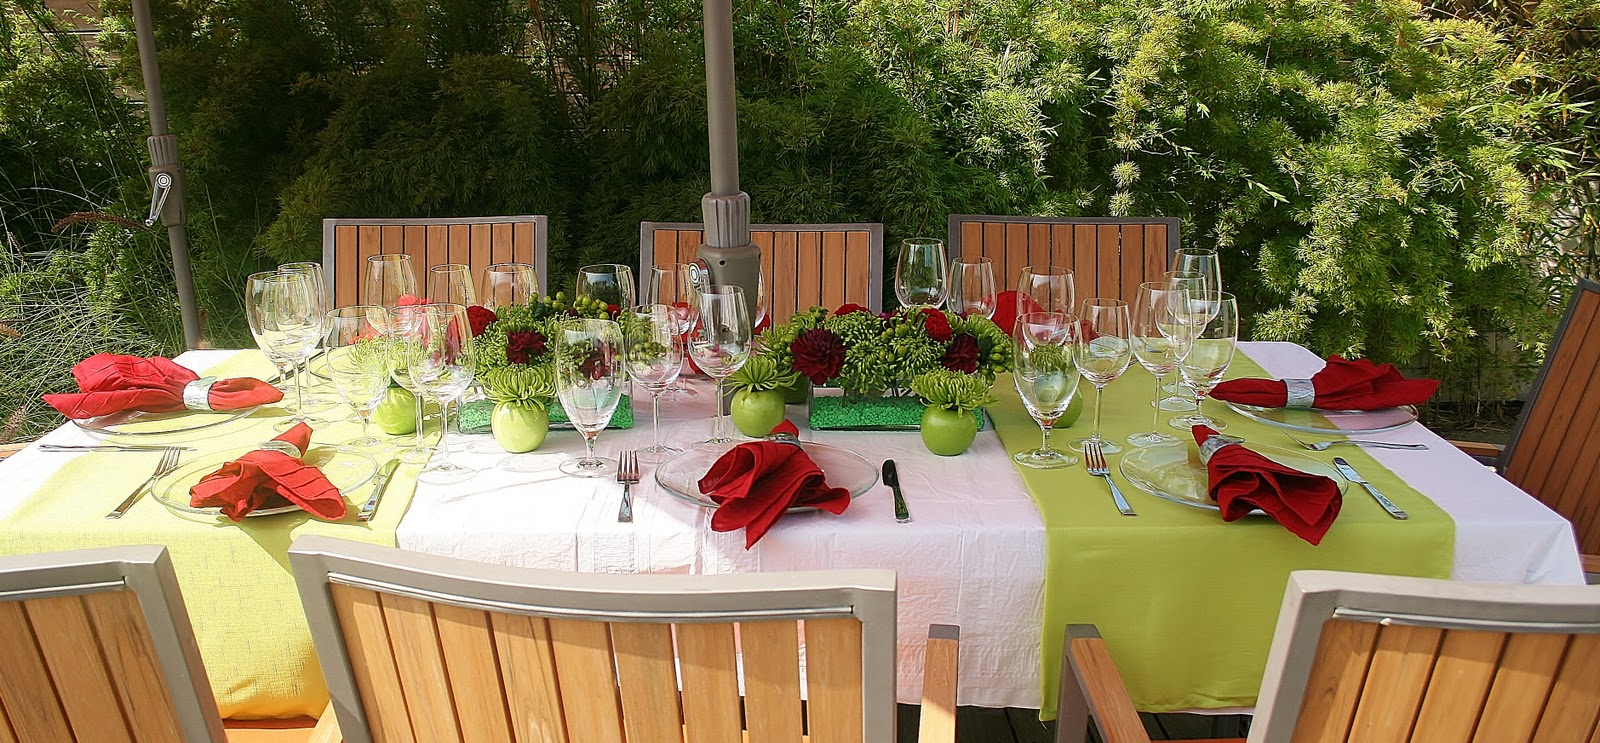 1000 Images About Tablescape On Pinterest